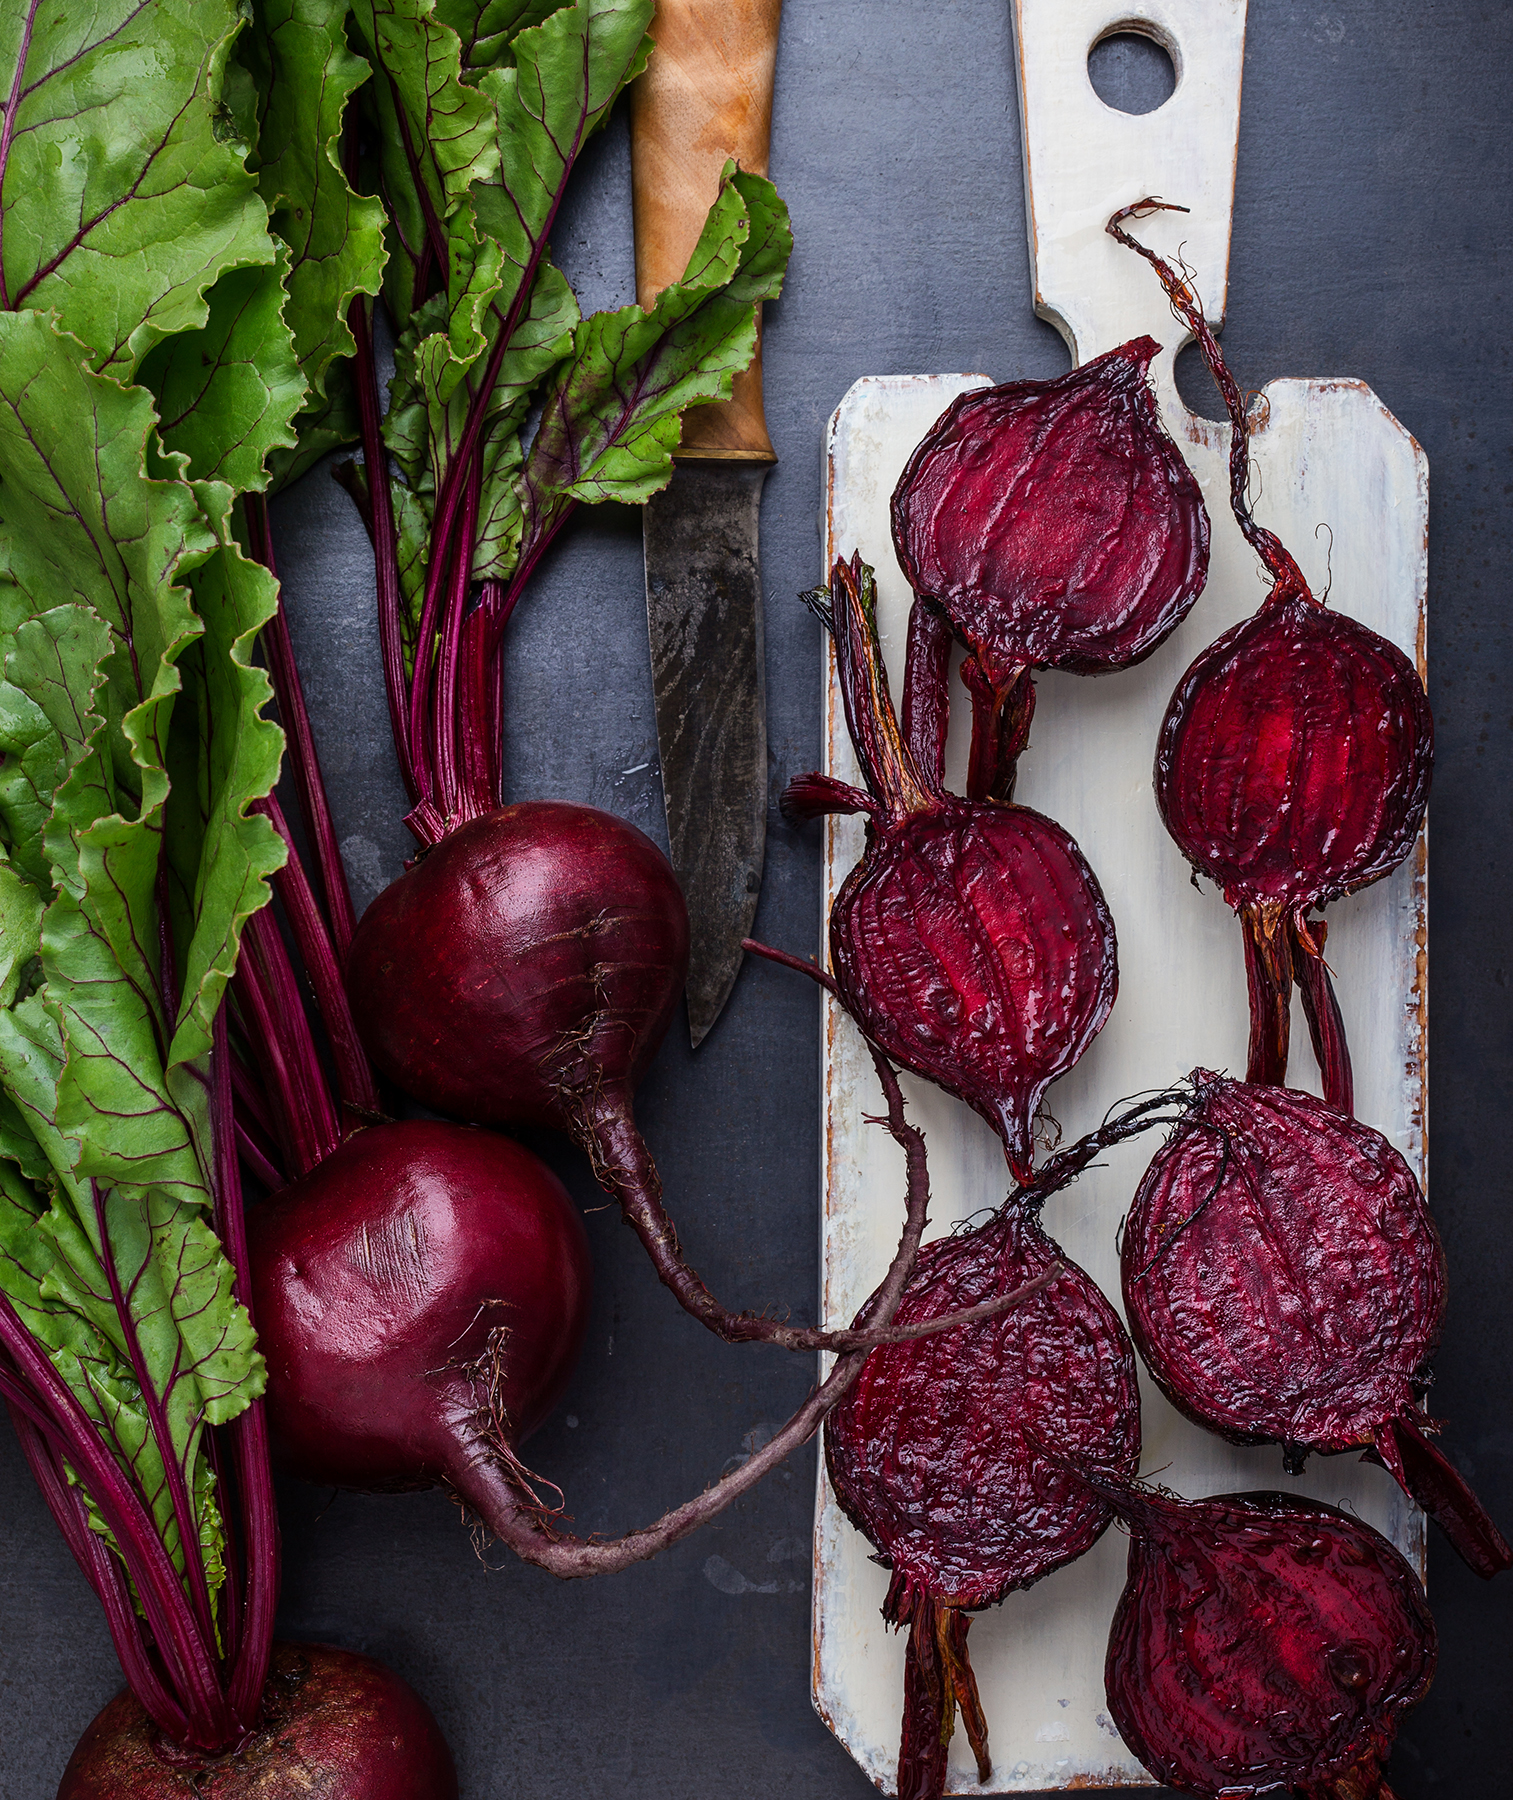 Fresh beets, some whole, some cut in half